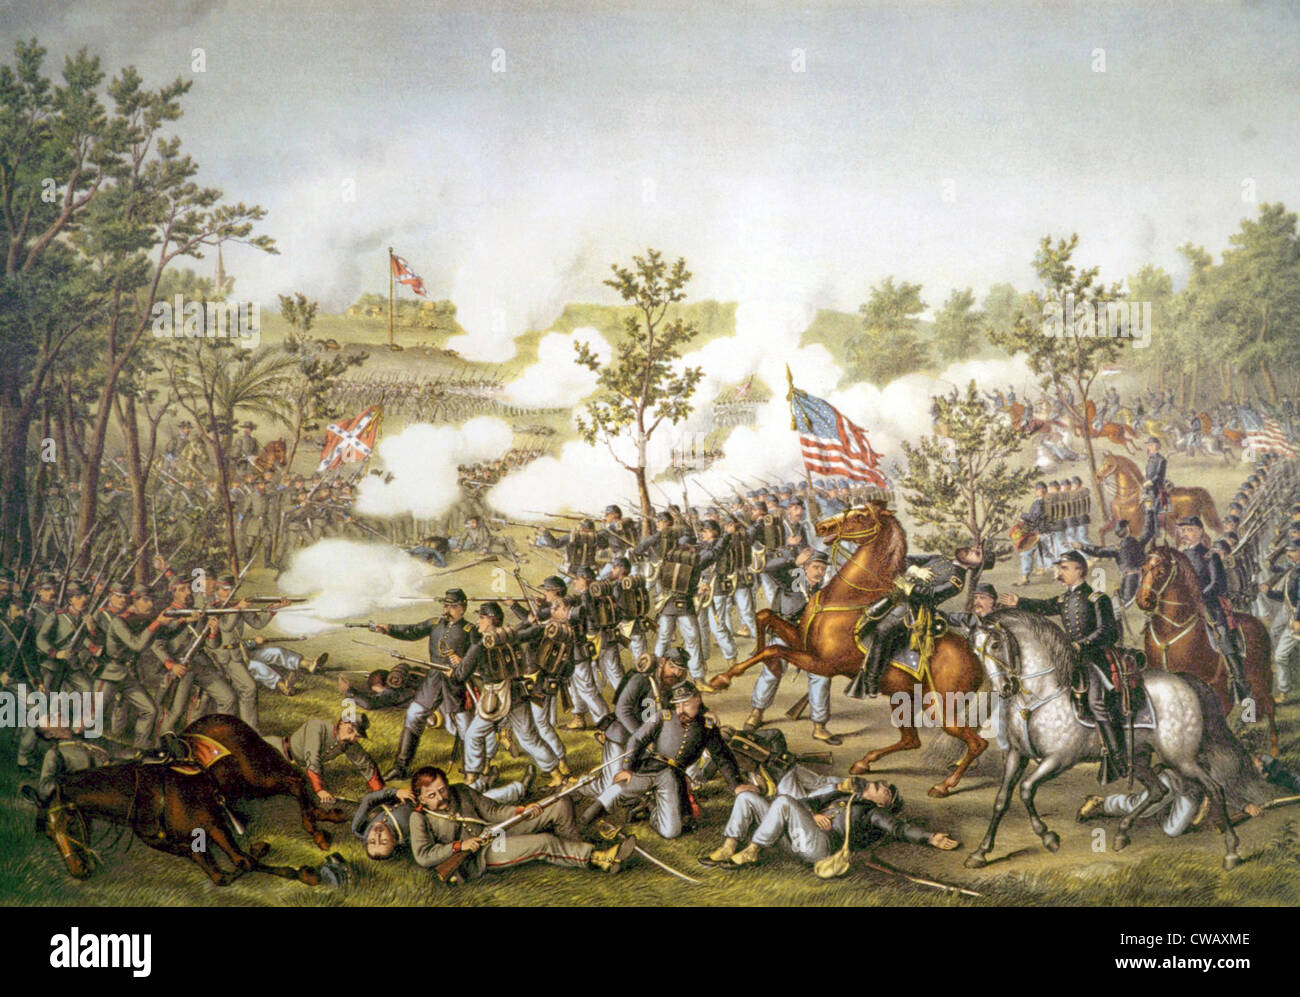 The Battle of Atlanta, July 22, 1864 - Stock Image